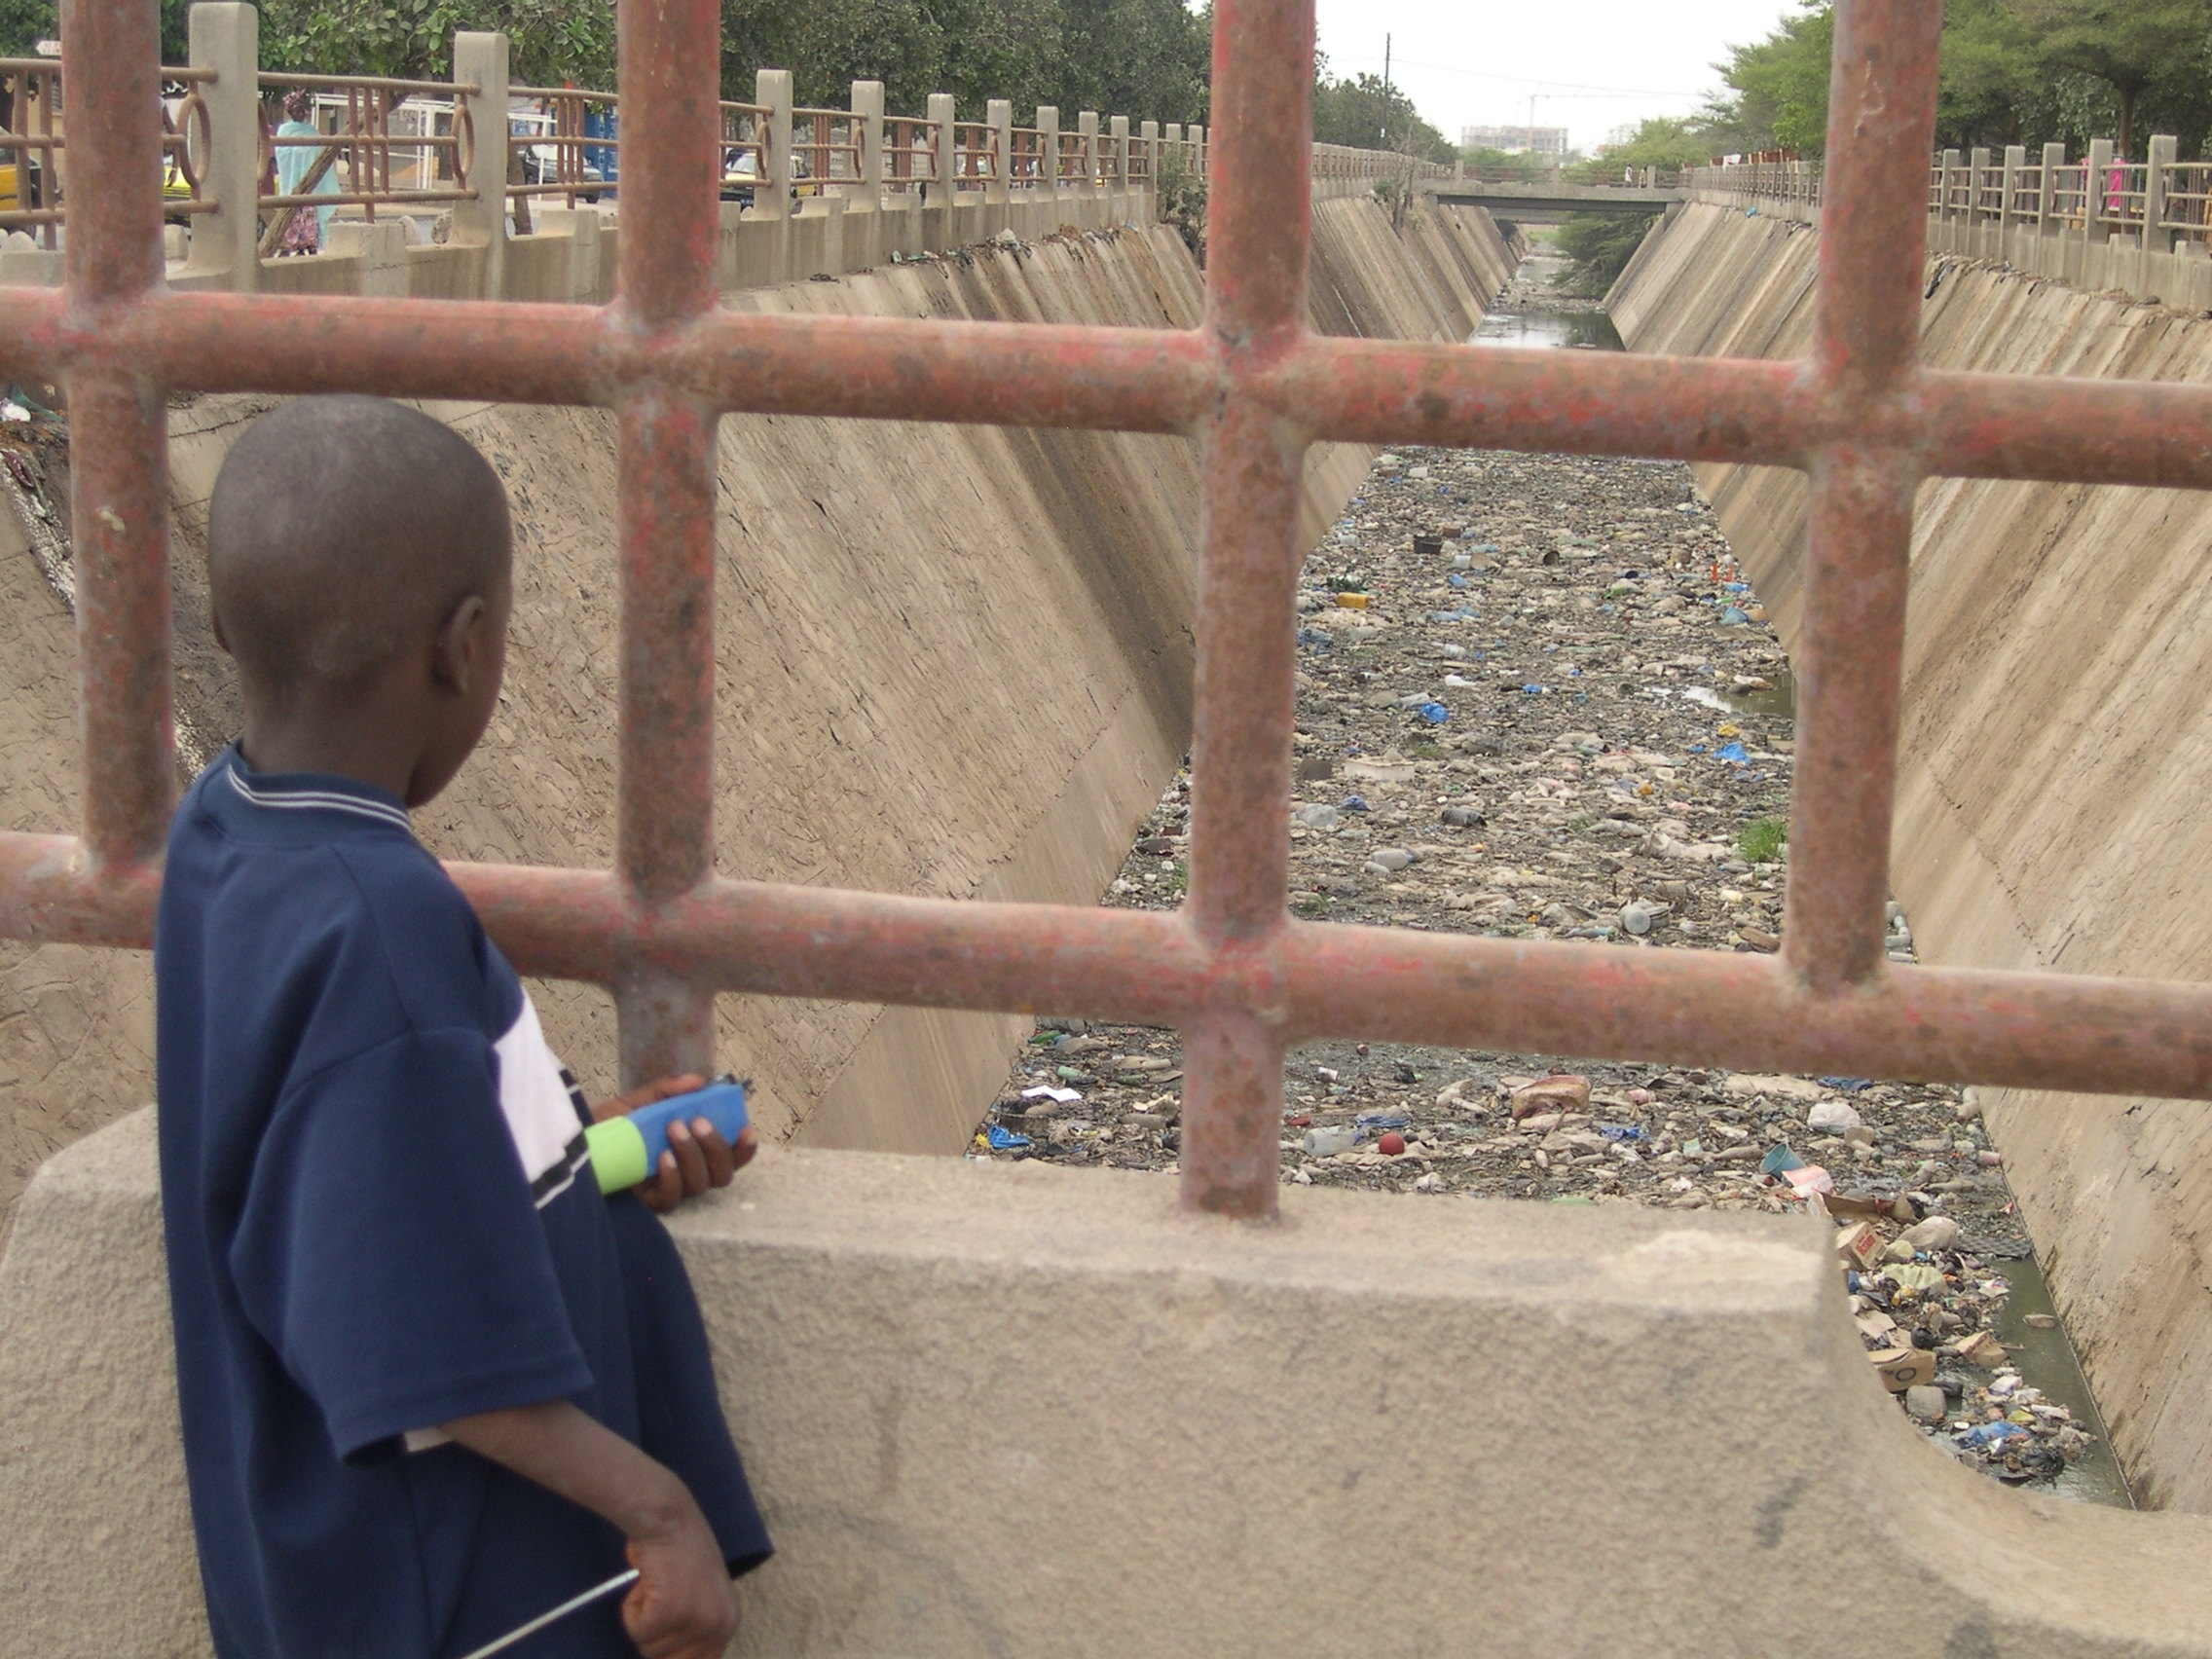 A neighbourhood child looks down at Canale 4, a channel meant for collecting rainwater.